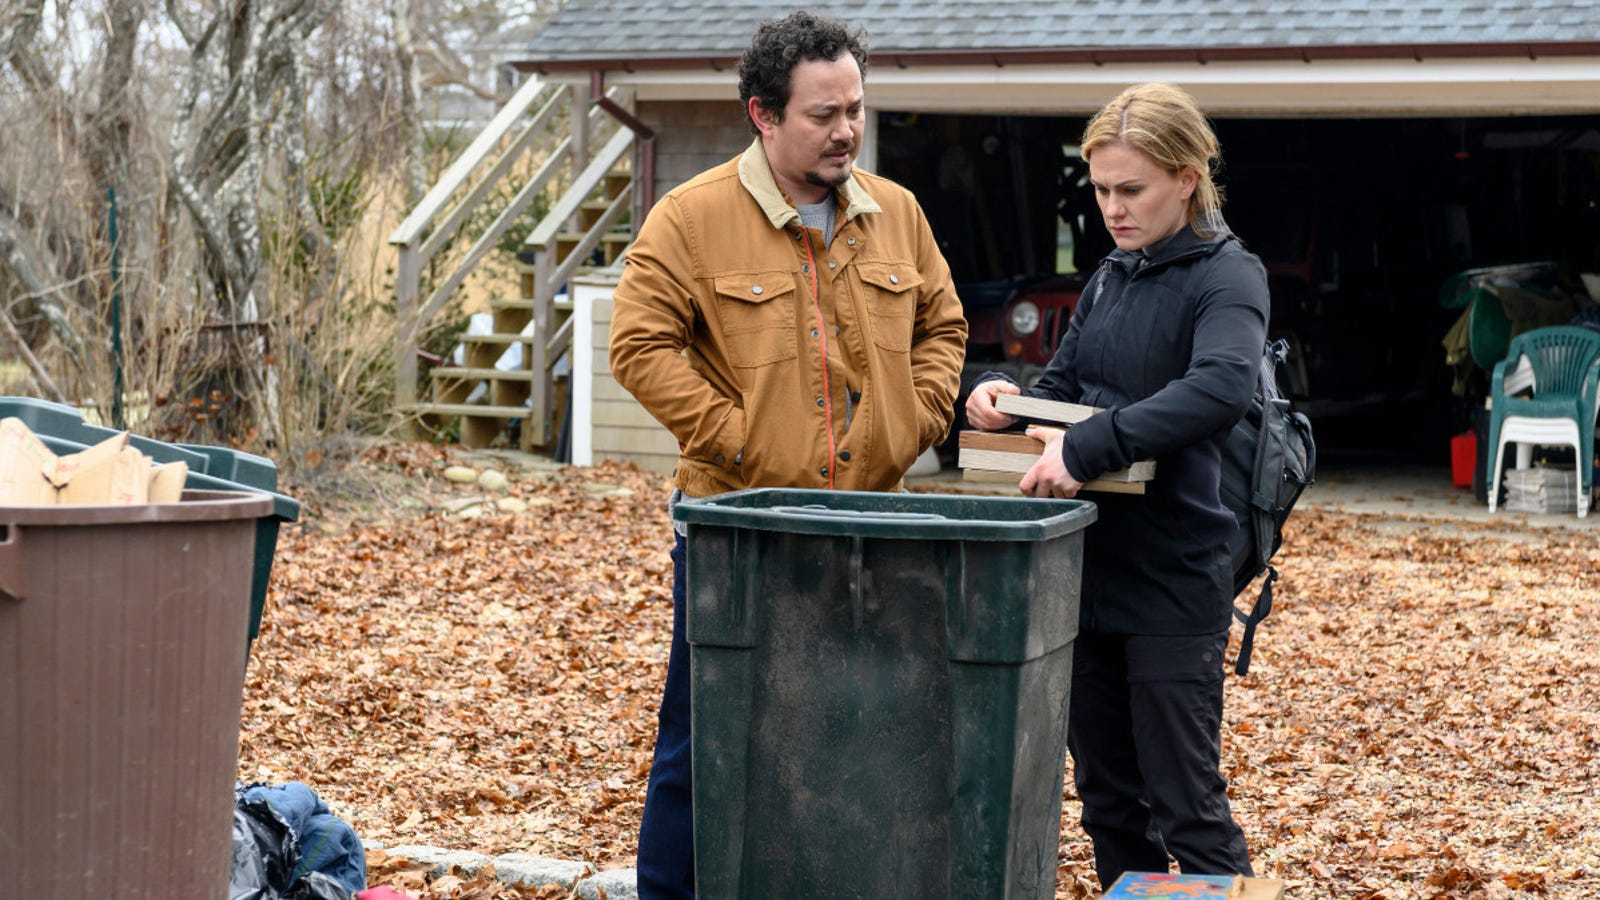 The Affair foolishly bases an entire episode on a character we don't know very well